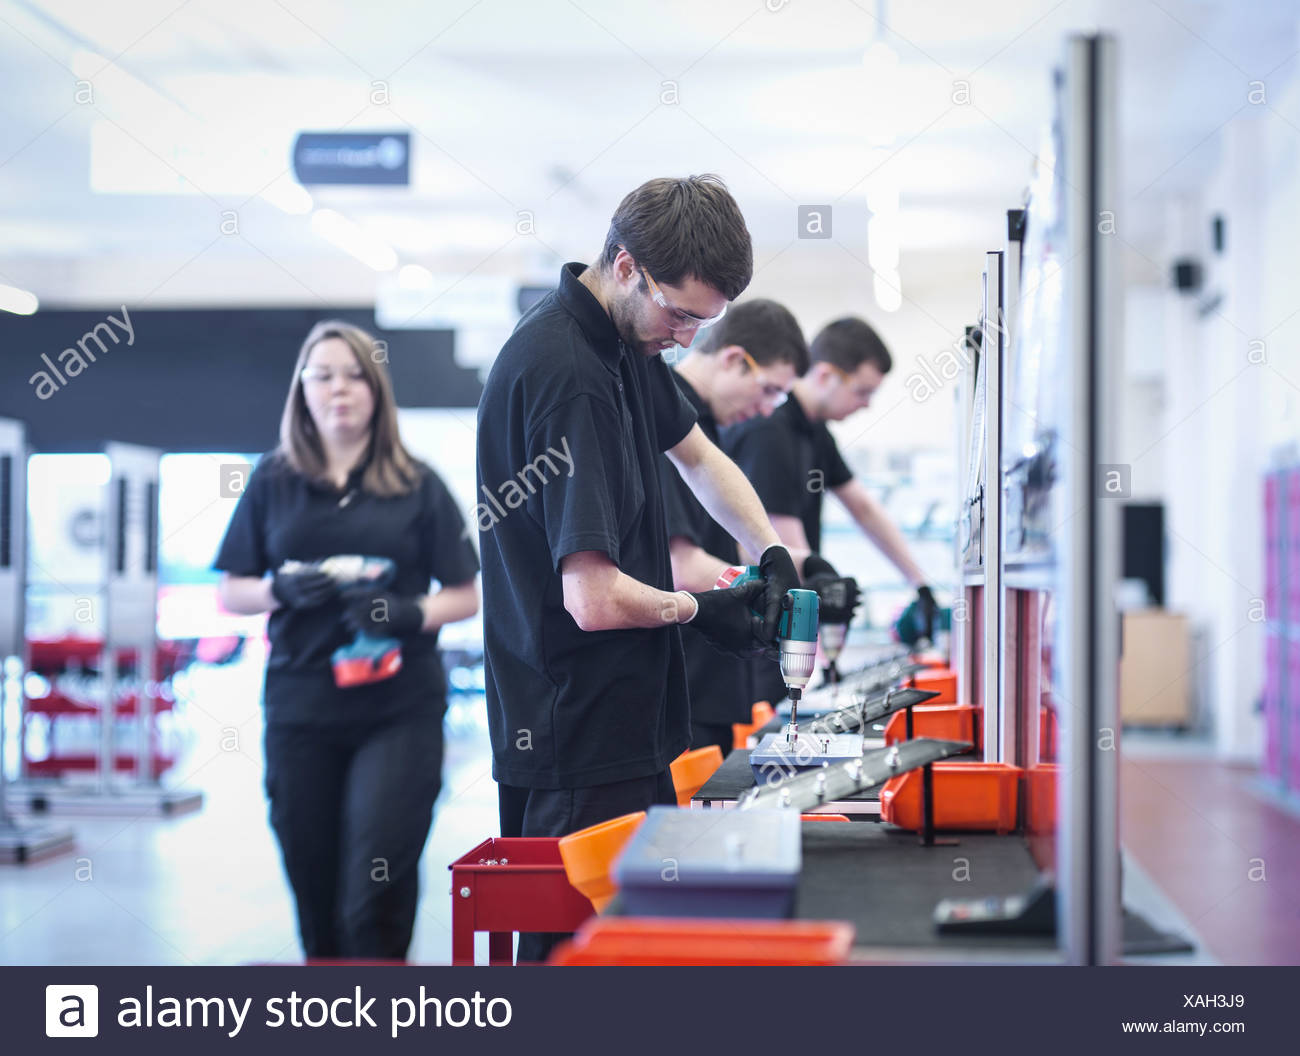 Apprentices working on training production line - Stock Image